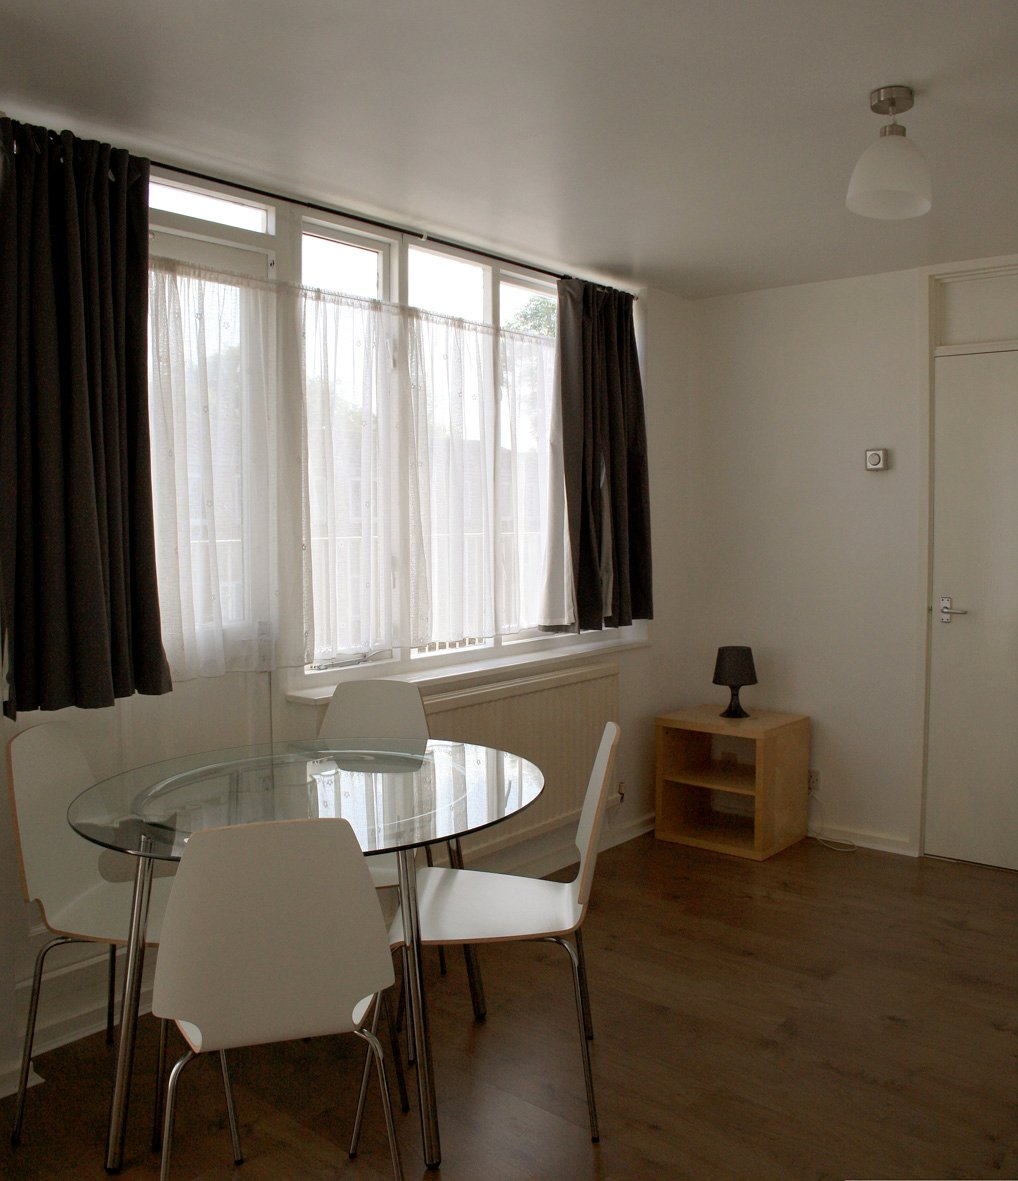 Best Way To Find Apartments For Rent: Lucey Way, London, SE16 3UD